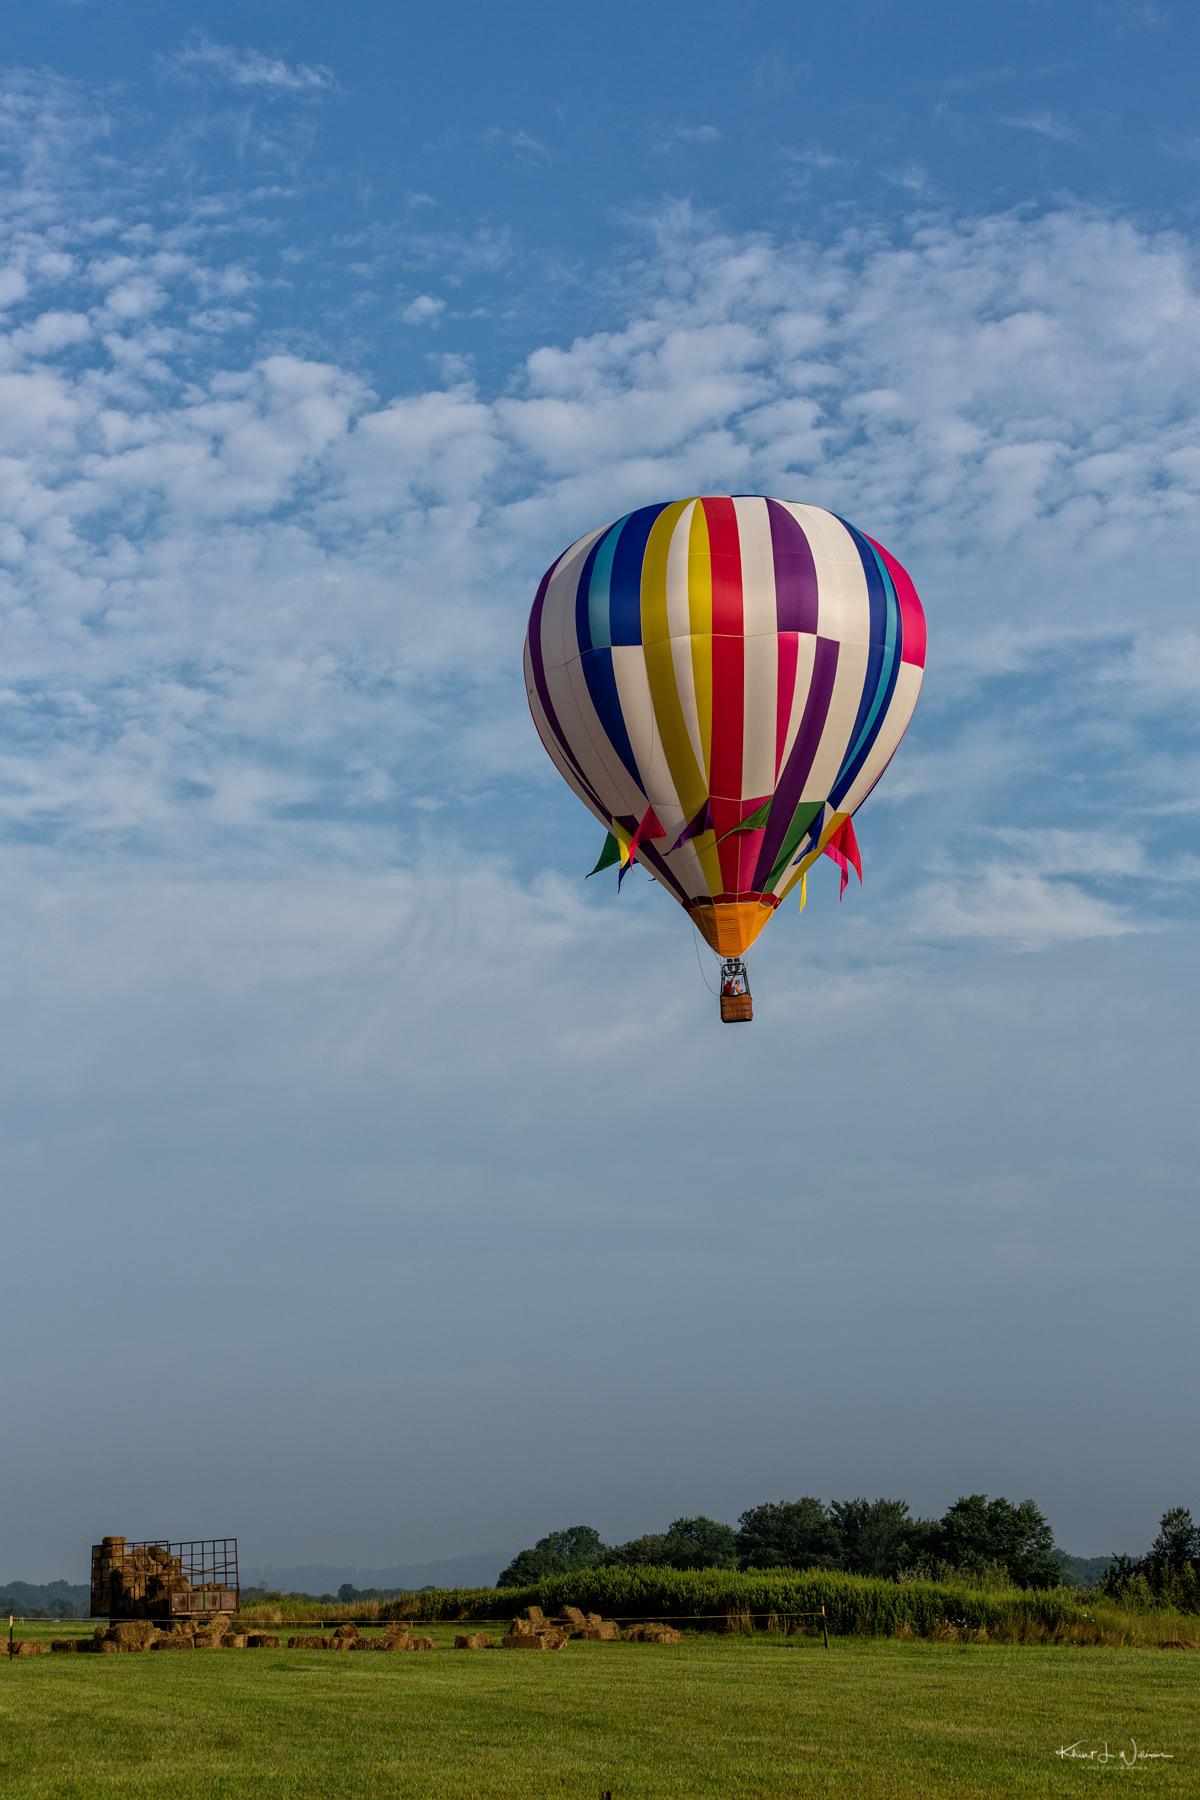 QuickChek Festival of Ballooning pre festival Media Launch QuickChek Festival of Ballooning Media Launch Canon EOS 5D Mark III 20180727 7068 Edit blog